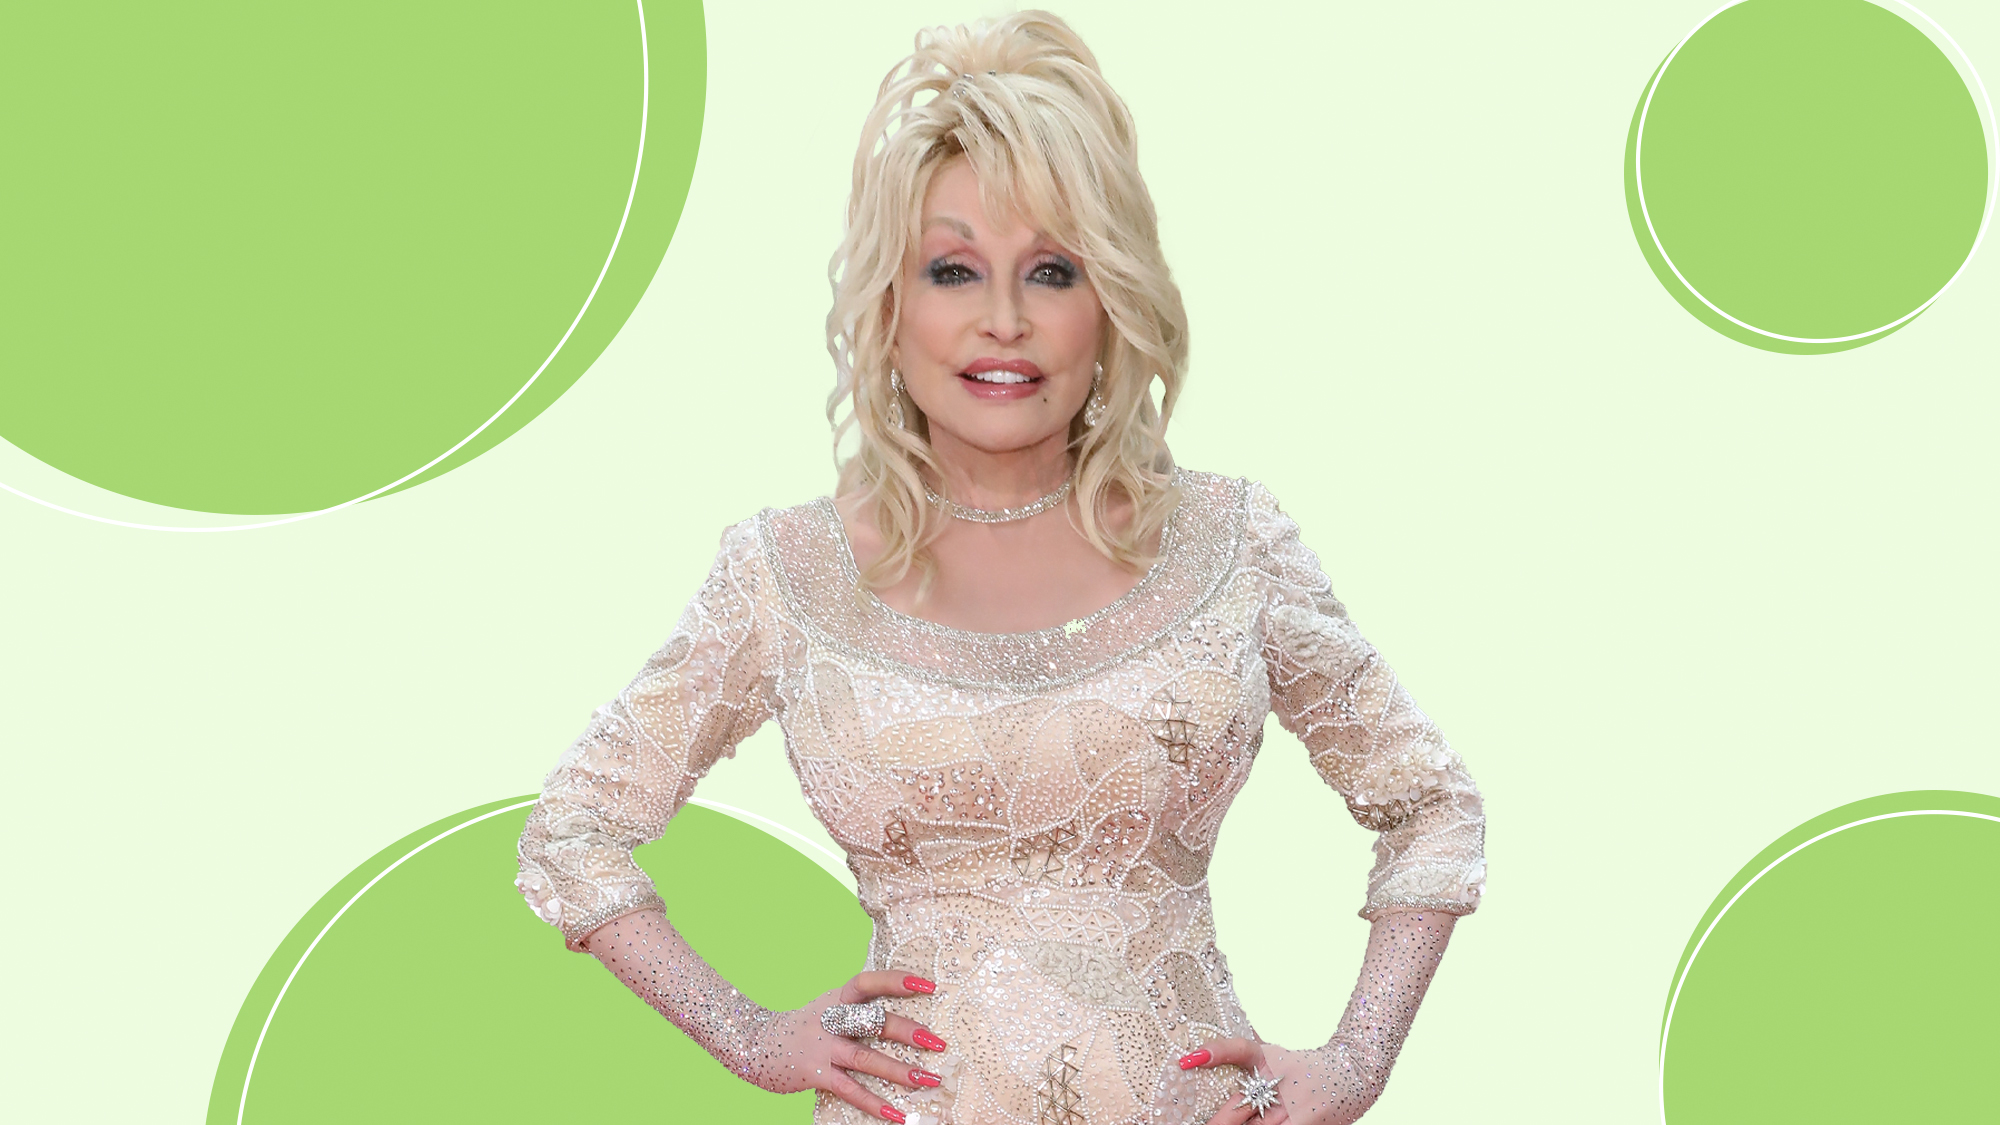 Dolly Parton on a designed background